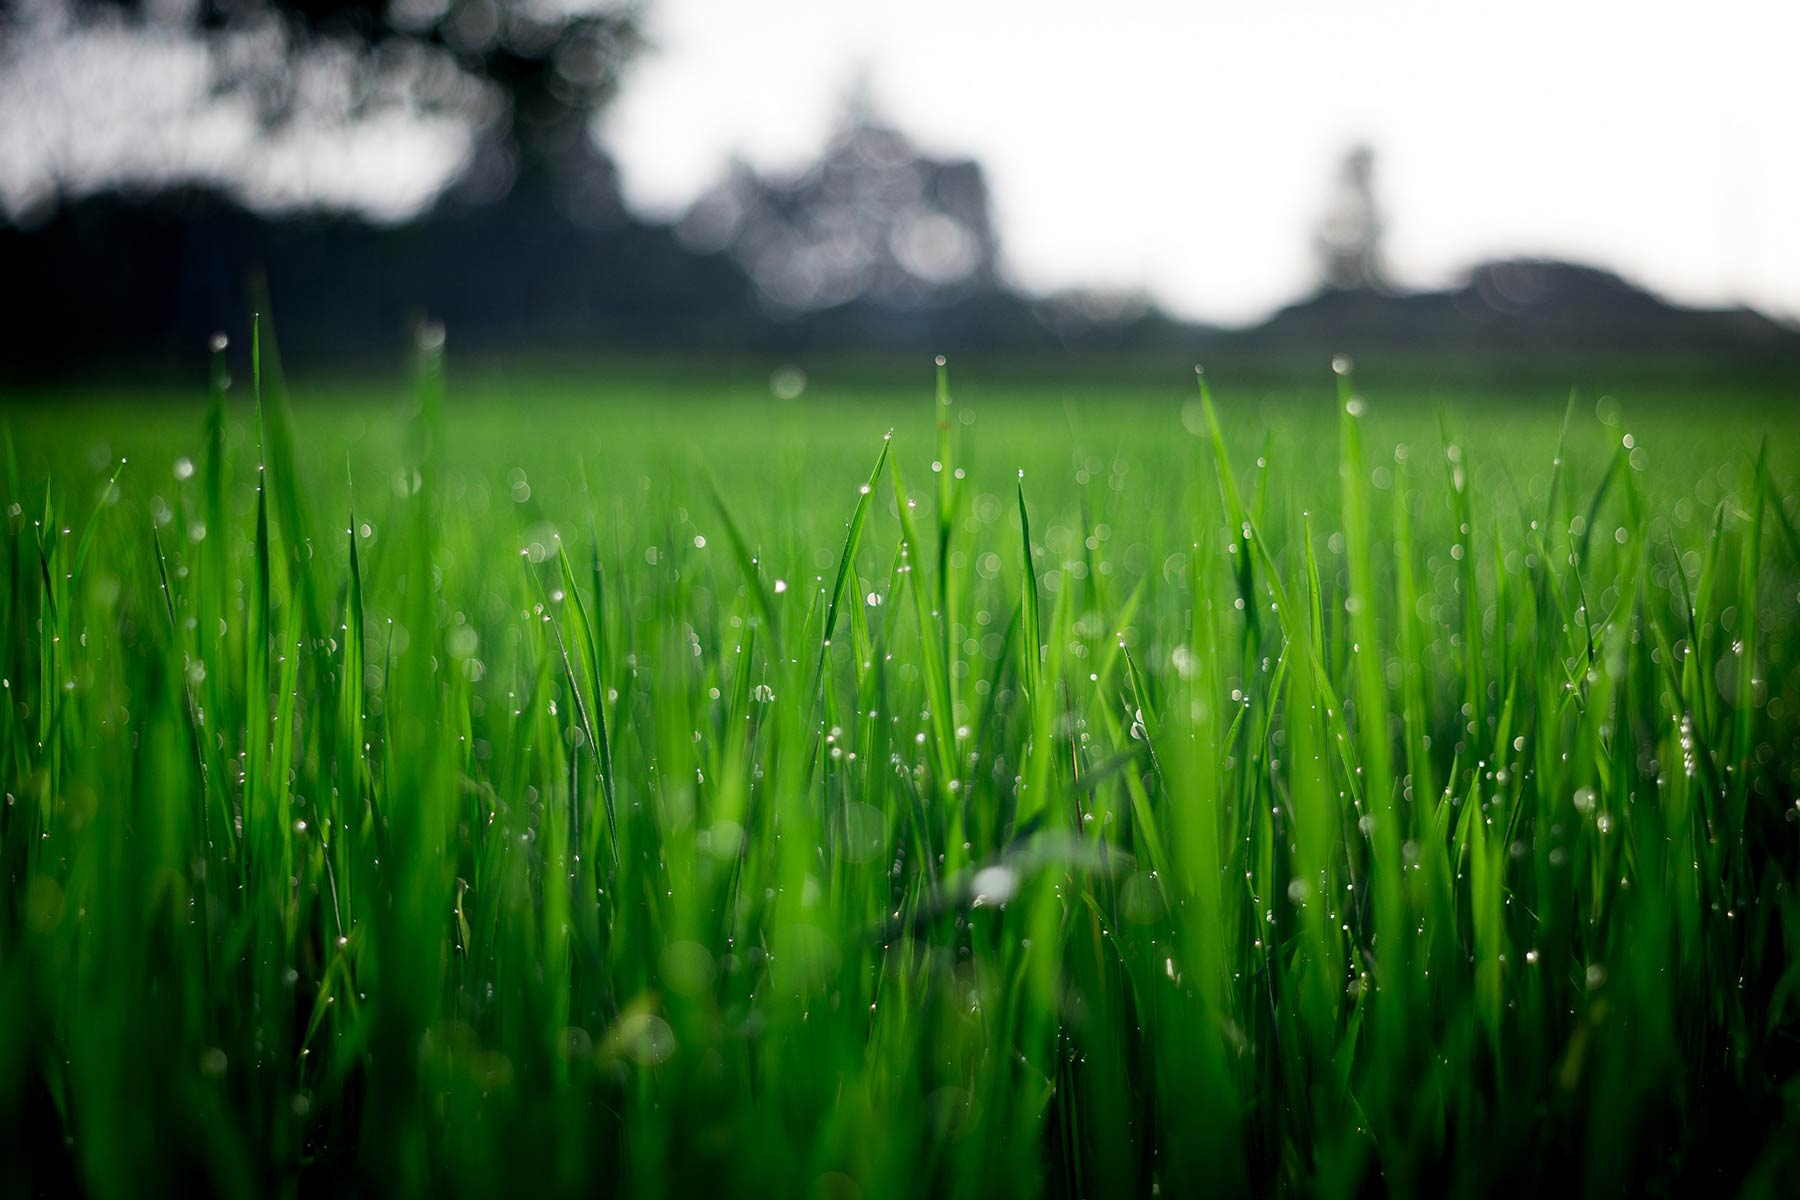 A close up photo of grass with a field of grass in a blurred background.